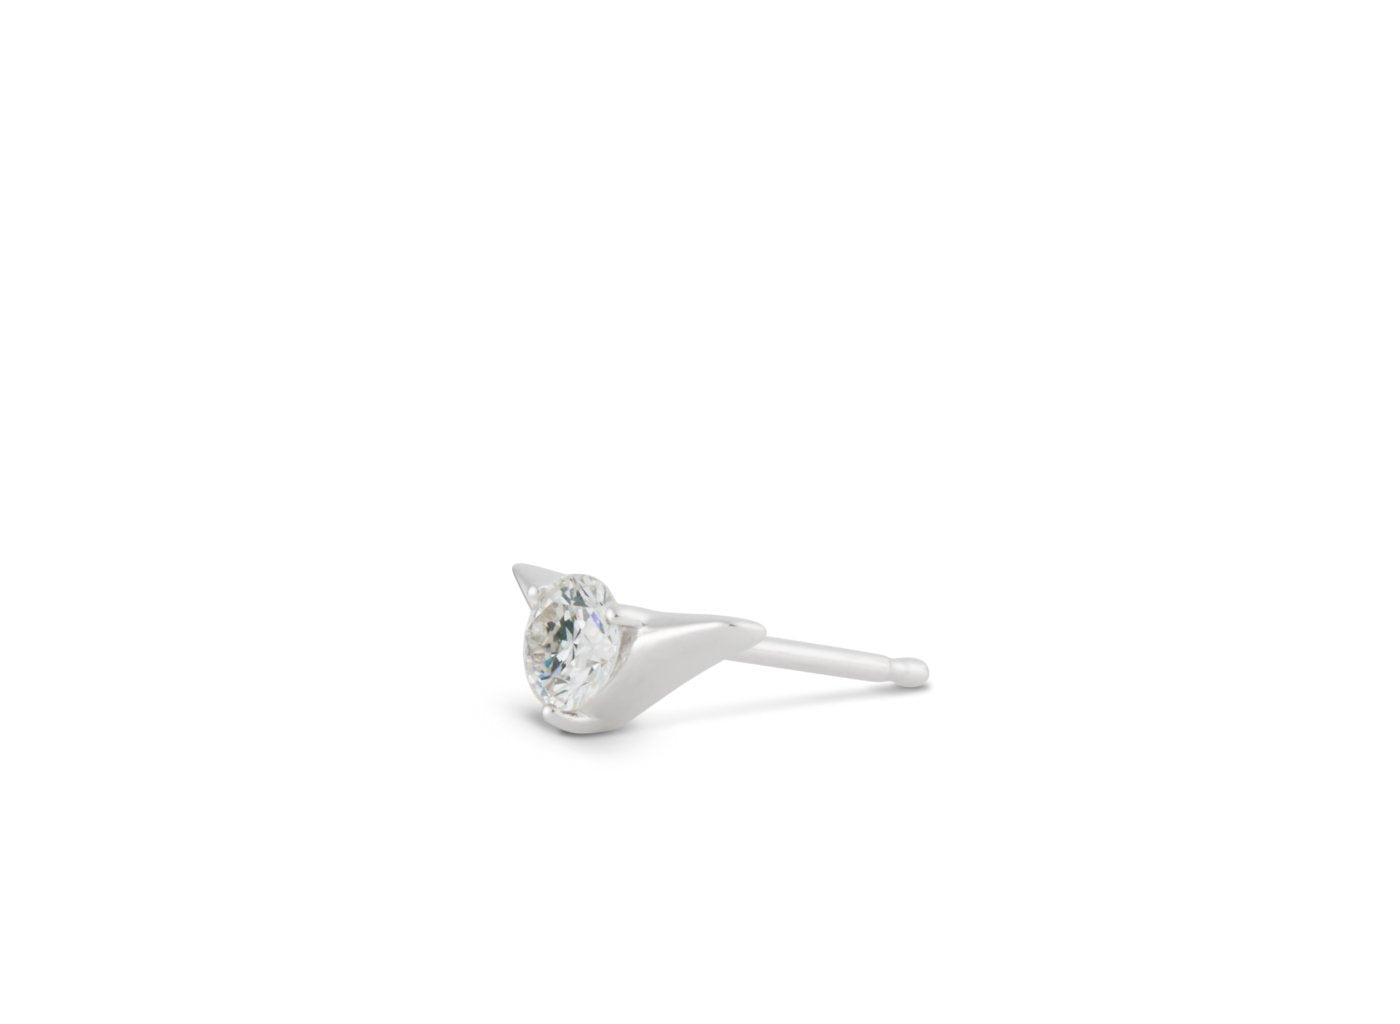 Side view of Chevron 1/4 carat earring with white diamond